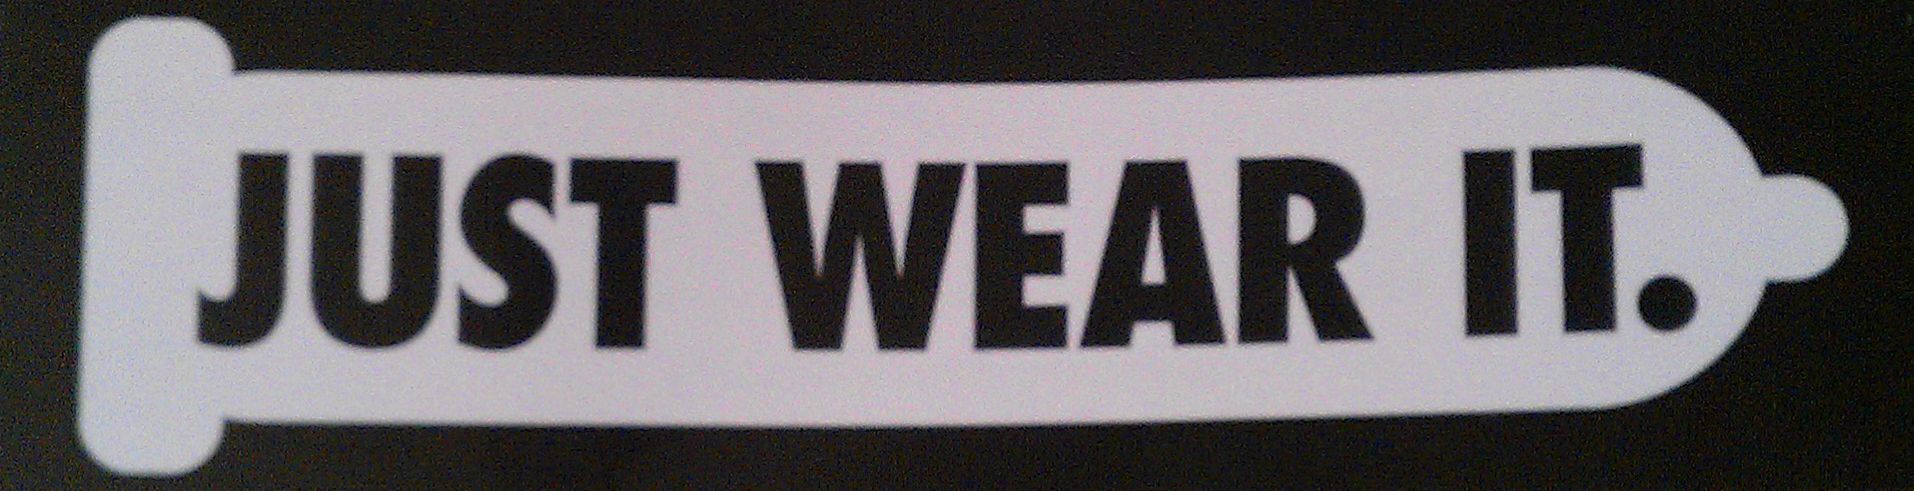 Just wear it really urgent care health safety medical